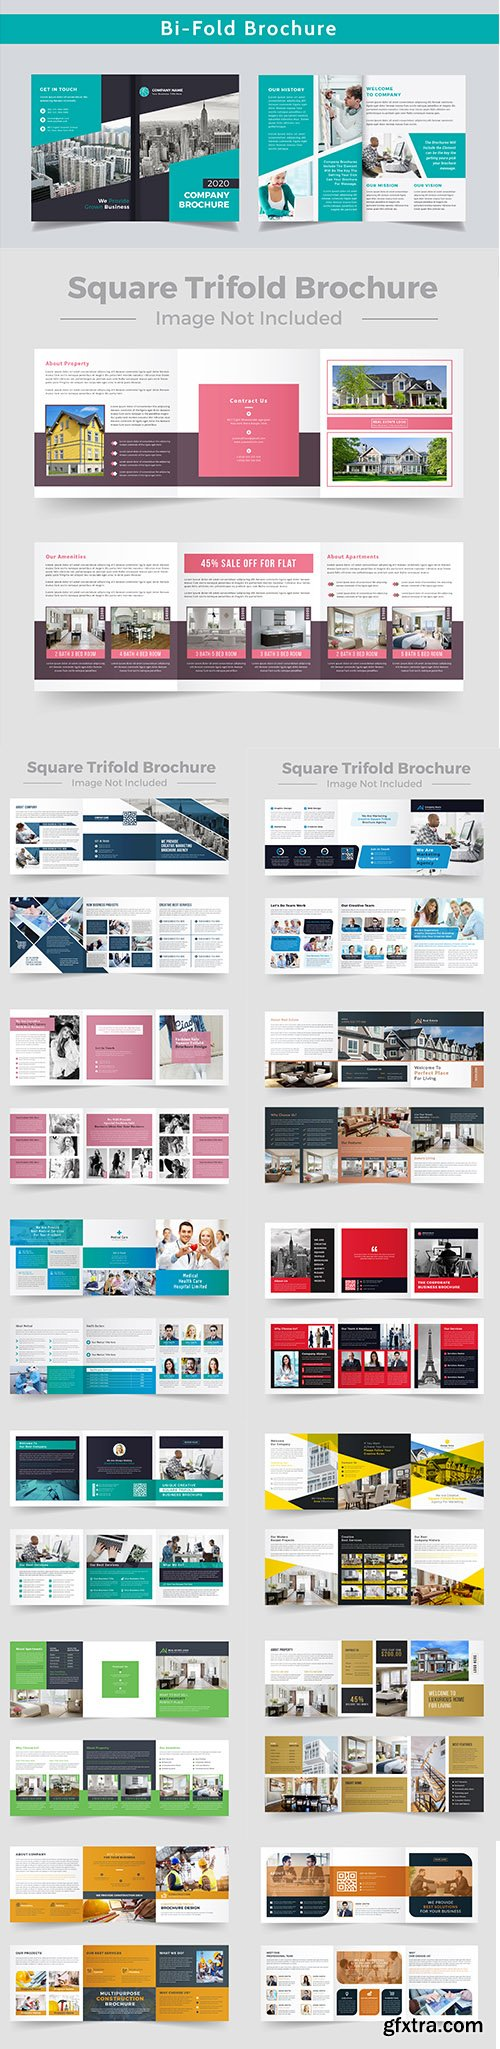 Square Trifold Business Brochure Design Template Pack